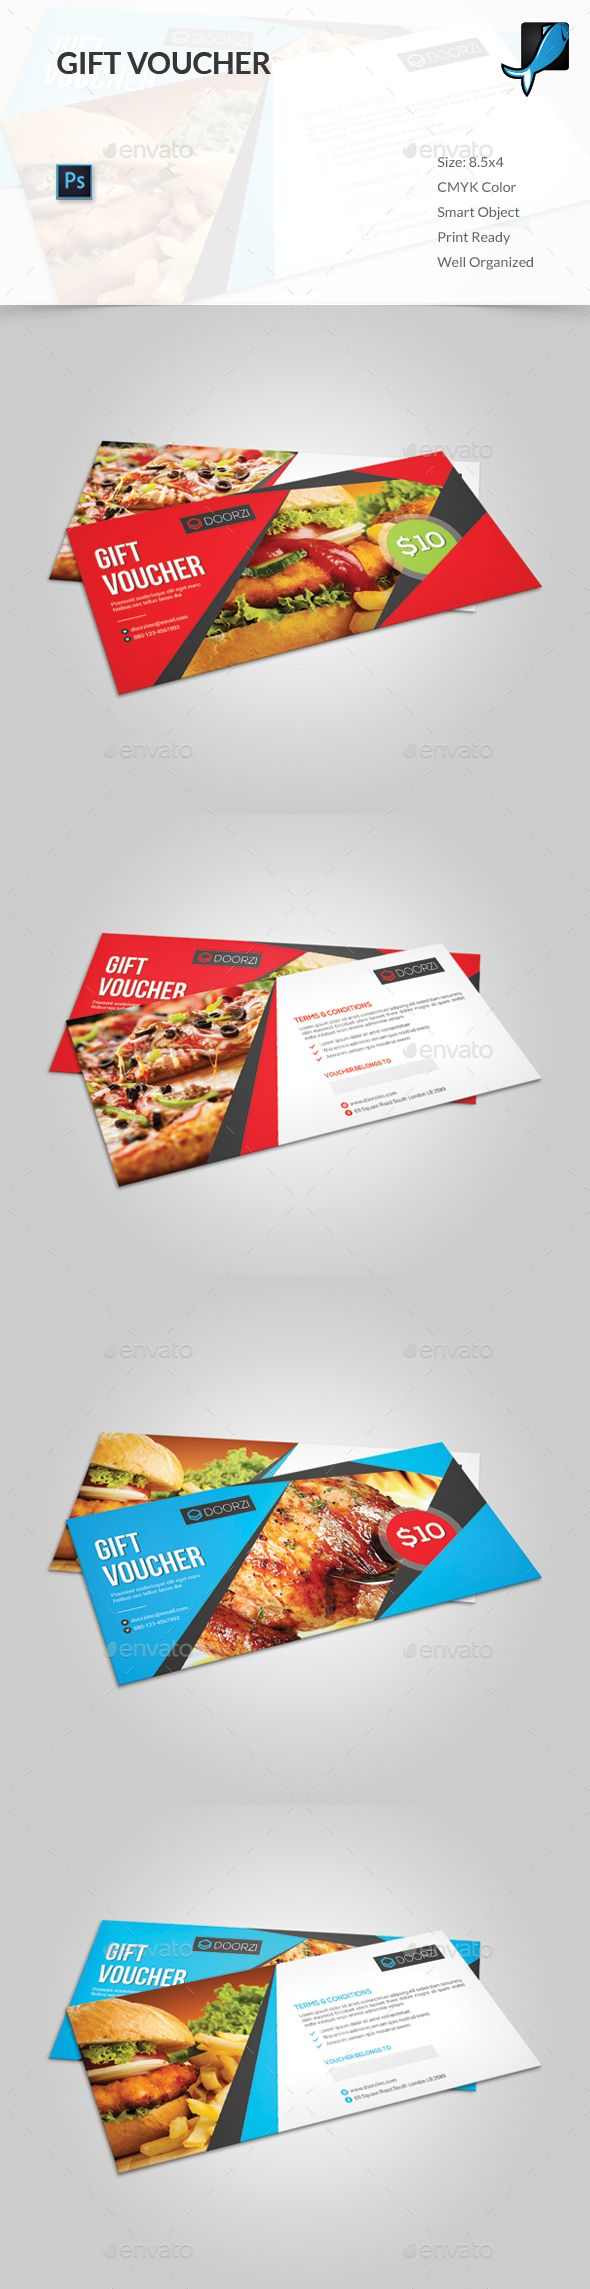 39 best gift voucher images on pinterest psd templates loyalty buy gift voucher by orcshape on graphicriver features easy to edit cmyk color mode with bleed help guide included photoshop psd file smart obje yelopaper Image collections